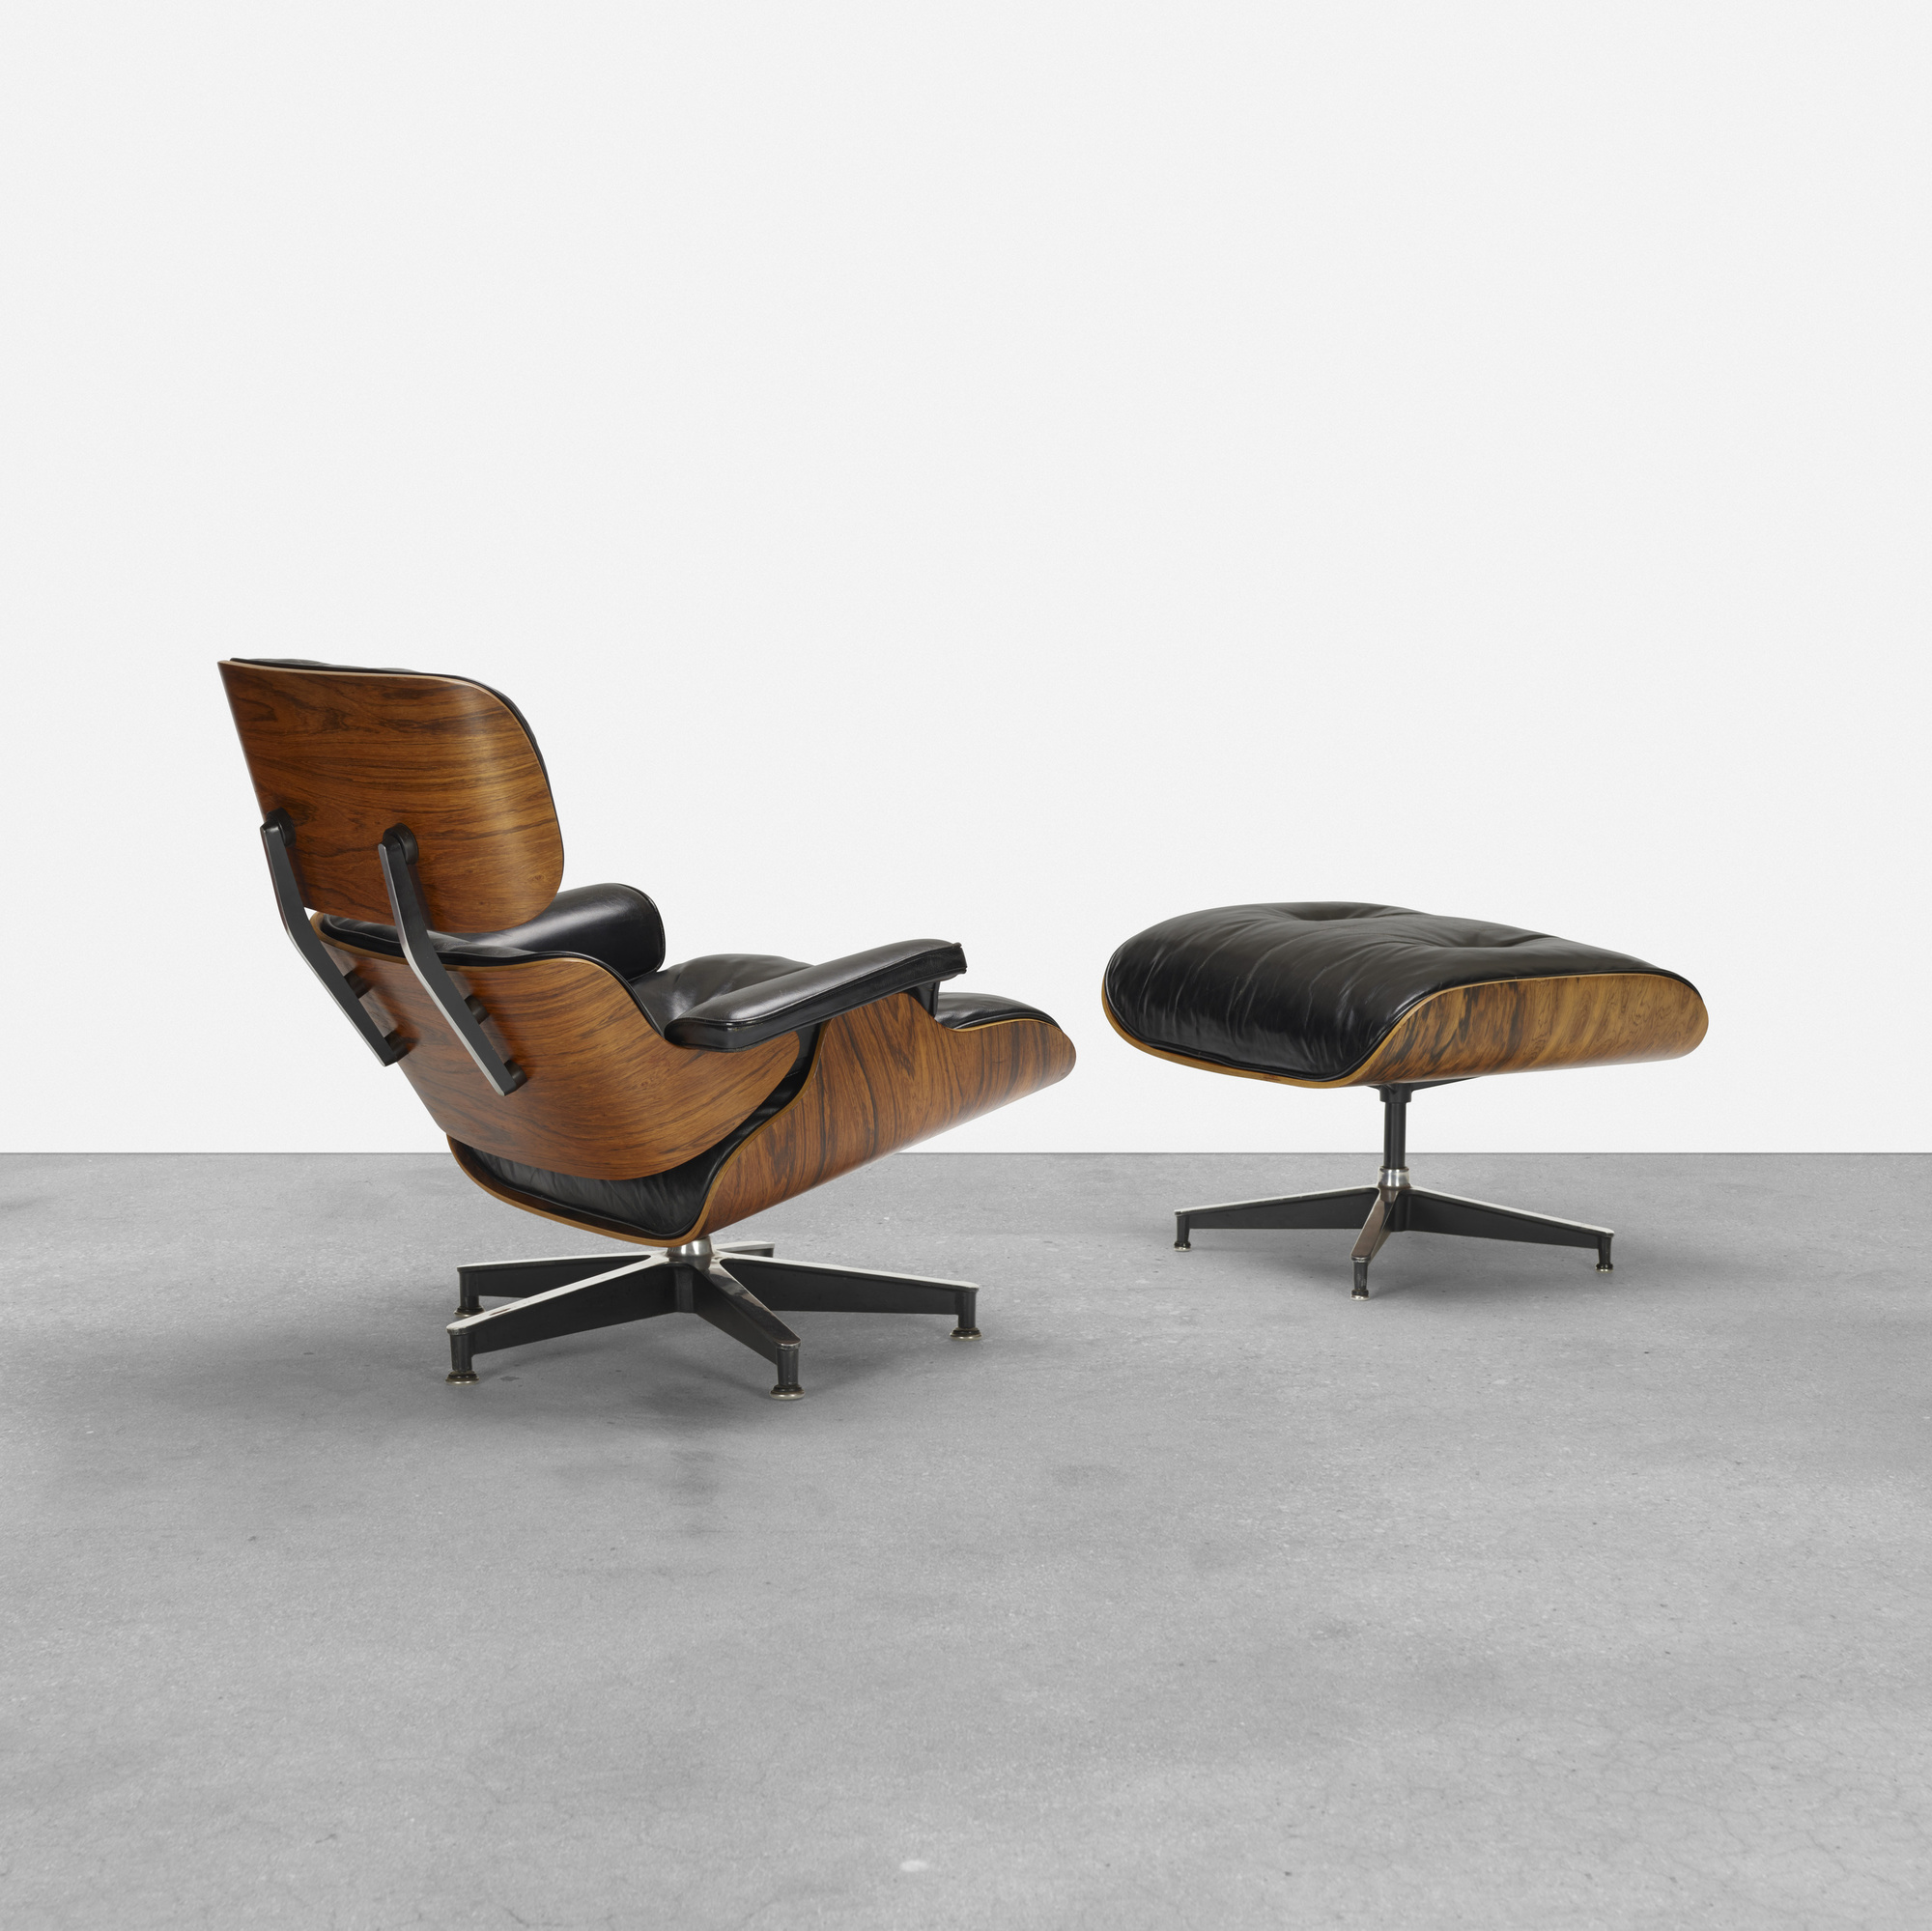 339 charles and ray eames 670 lounge chair and 671 ottoman - Charles eames and ray eames ...